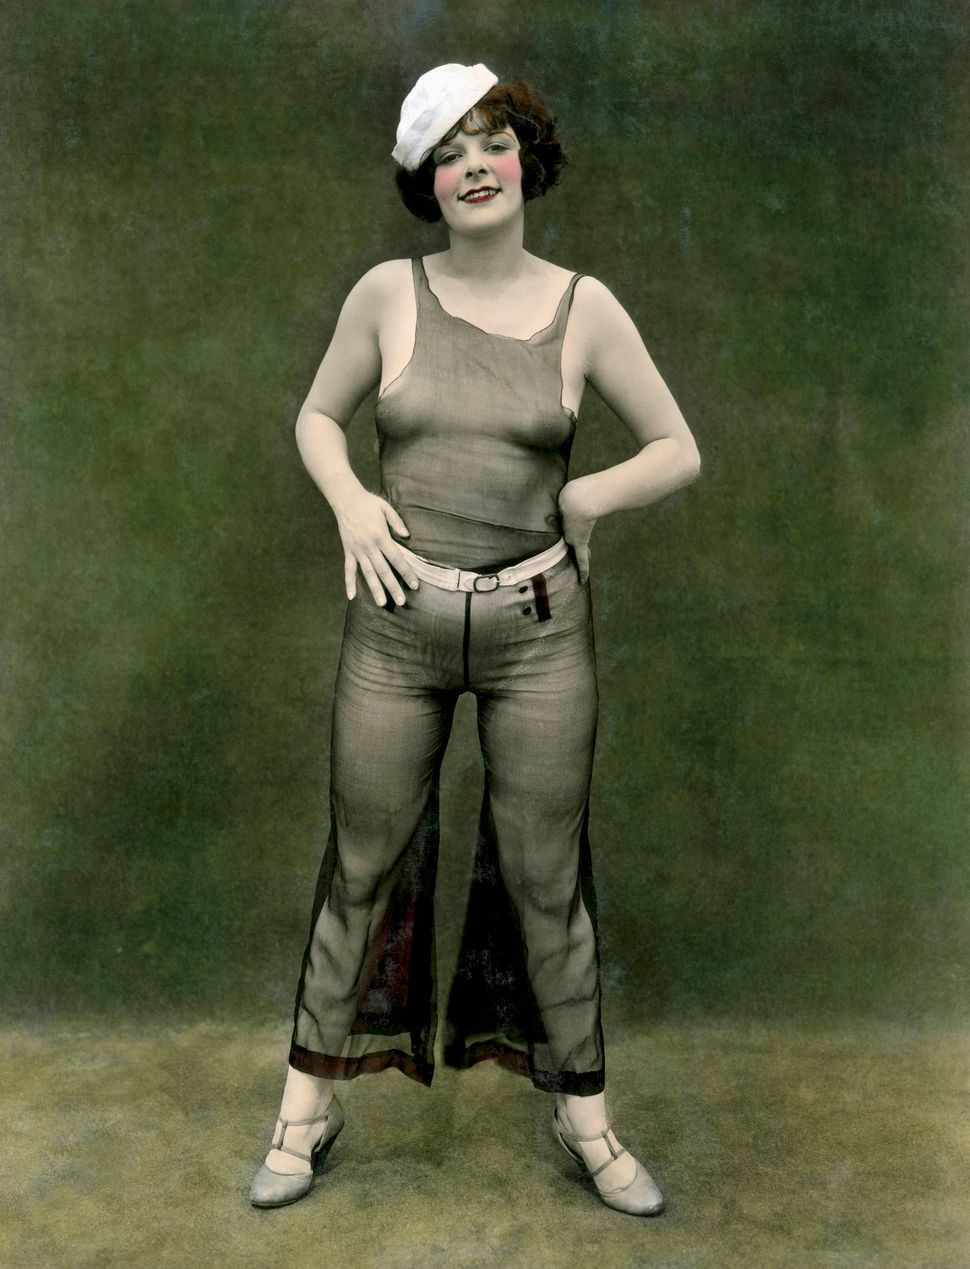 """Titled """"A Little Salt,"""" this pin-up woman in a sheer outfit and a sailor cap looks the part in 1930."""